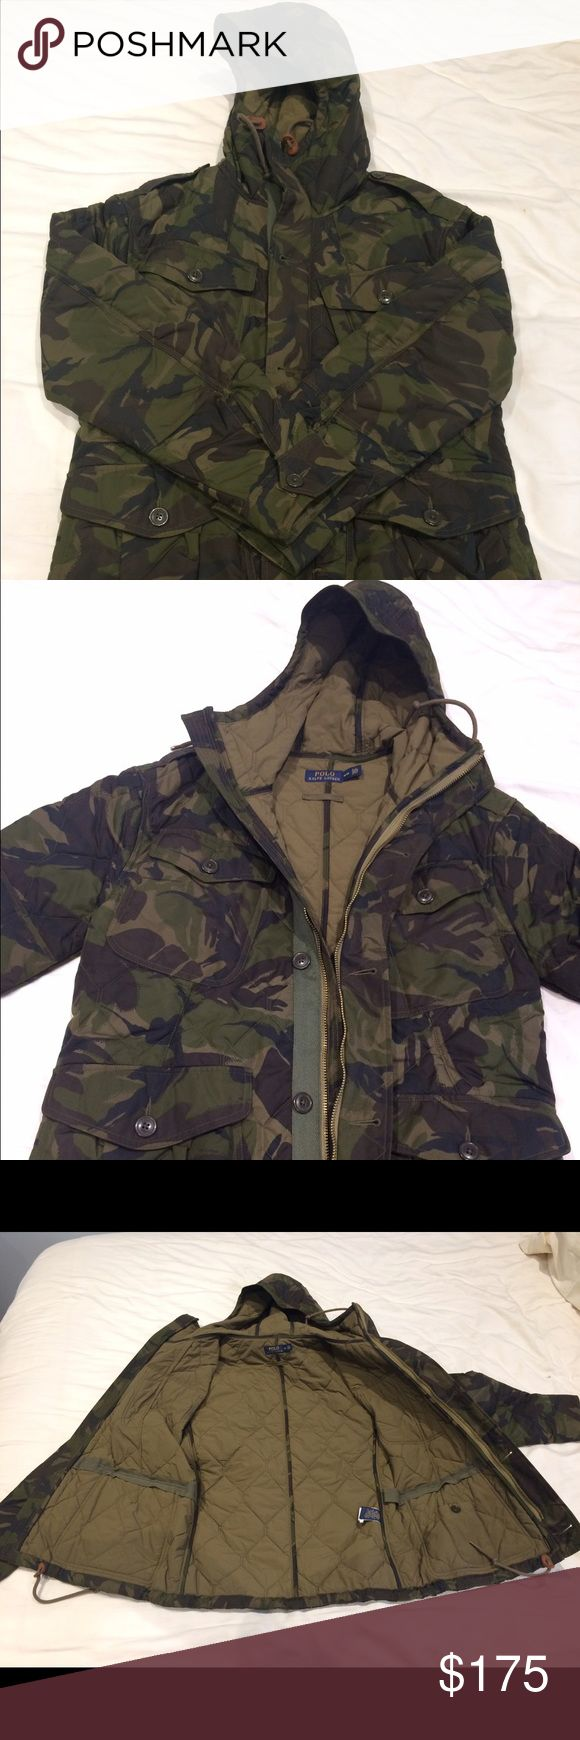 Polo Ralph Lauren winter jacket This is a camo winter jacket. Purchased from Polo Ralph Lauren Outlet in Gilroy. Great condition (10/10), never worn. Polo by Ralph Lauren Jackets & Coats Military & Field